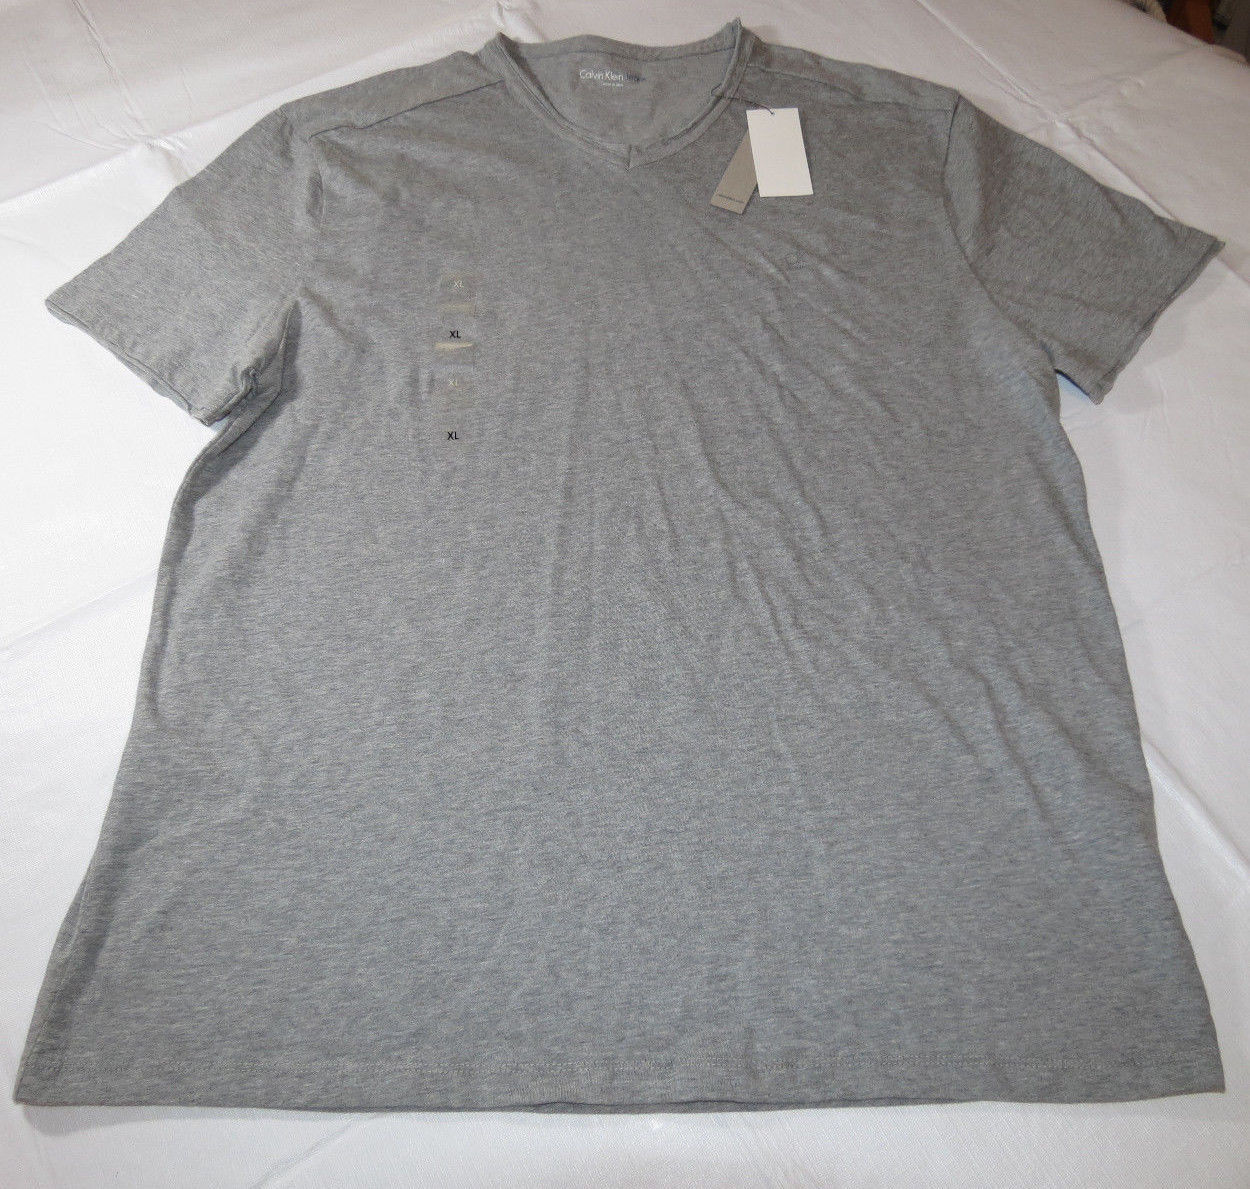 Primary image for Calvin Klein Jeans Mens short sleeve t shirt XL xlg 41AK216 Charcoal Hthr 034